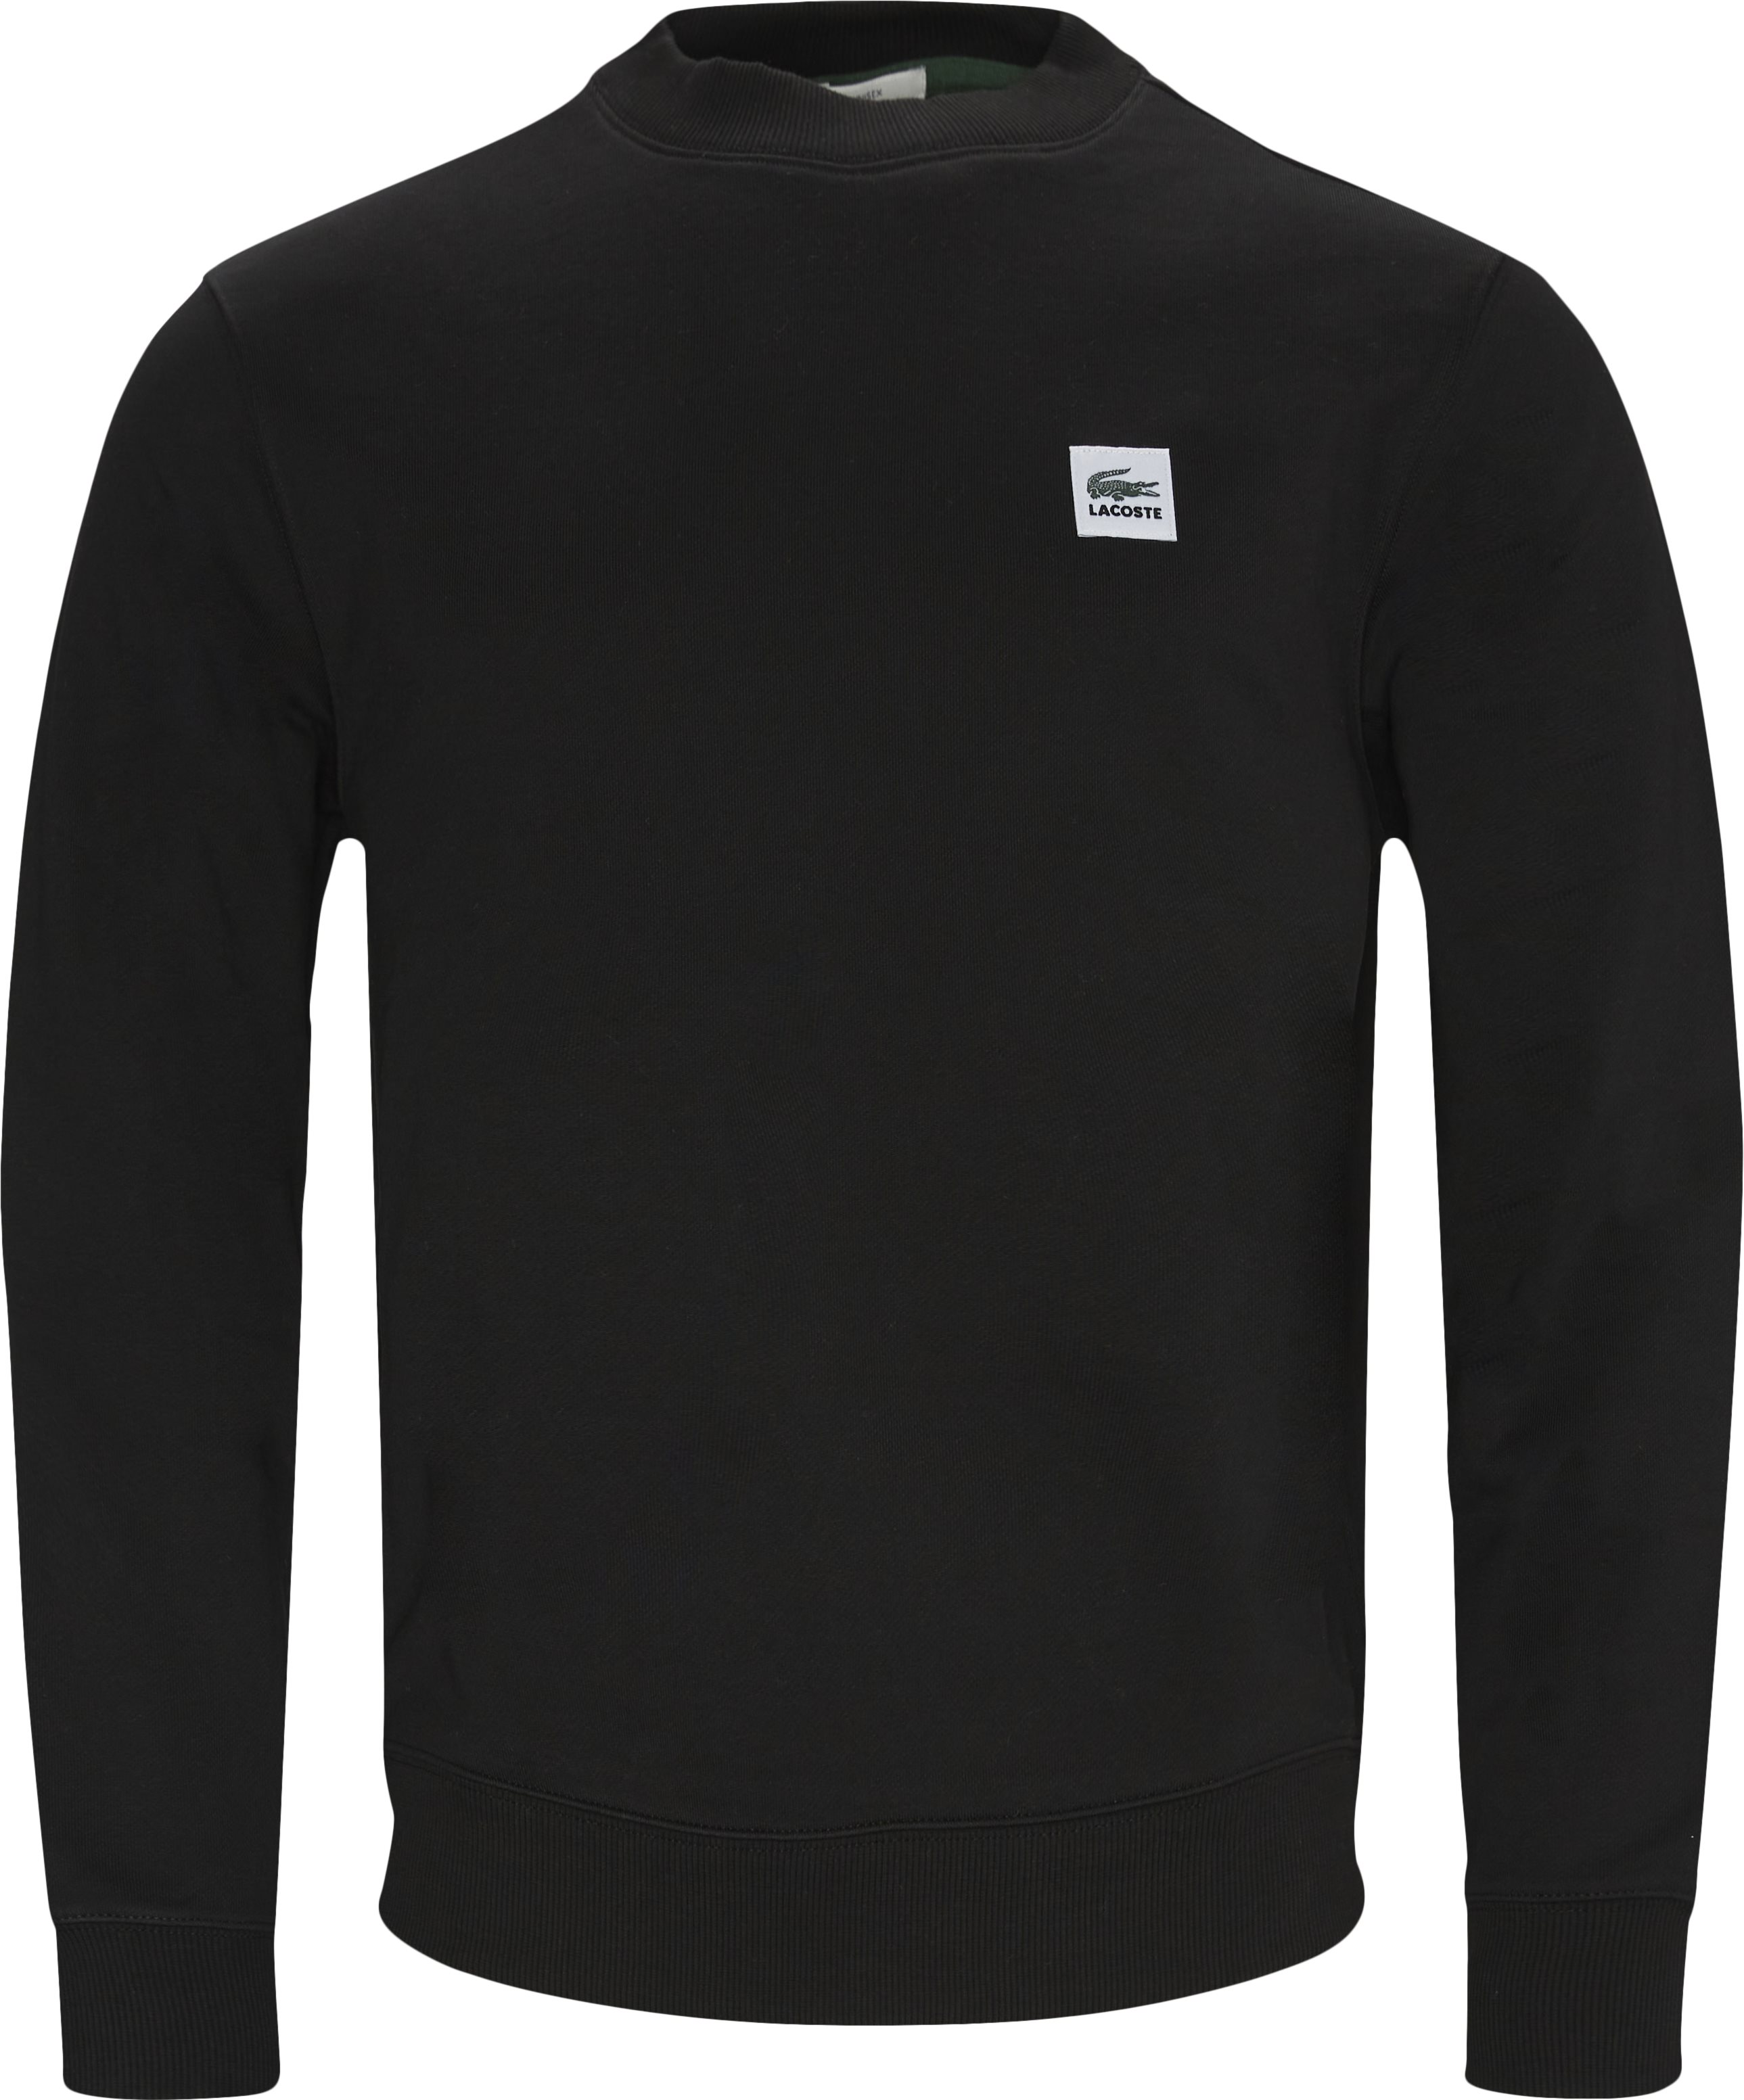 Crewneck Sweatshirt - Sweatshirts - Regular - Black